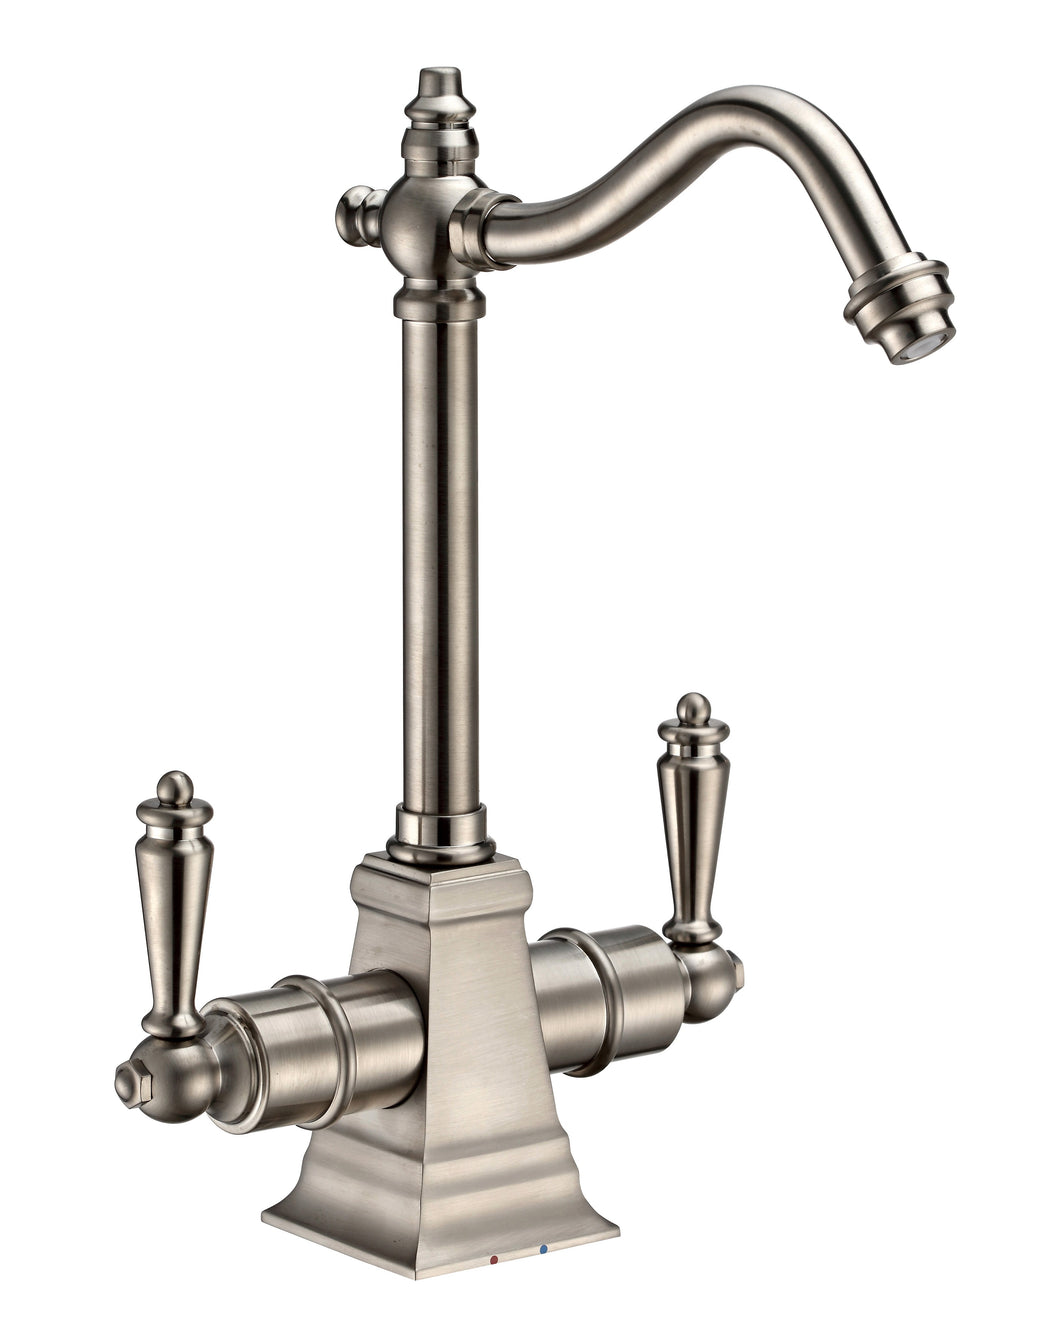 Whitehaus Point of Use Instant Hot/Cold Water Drinking Faucet with Traditional Swivel Spout in Brushed Nickel